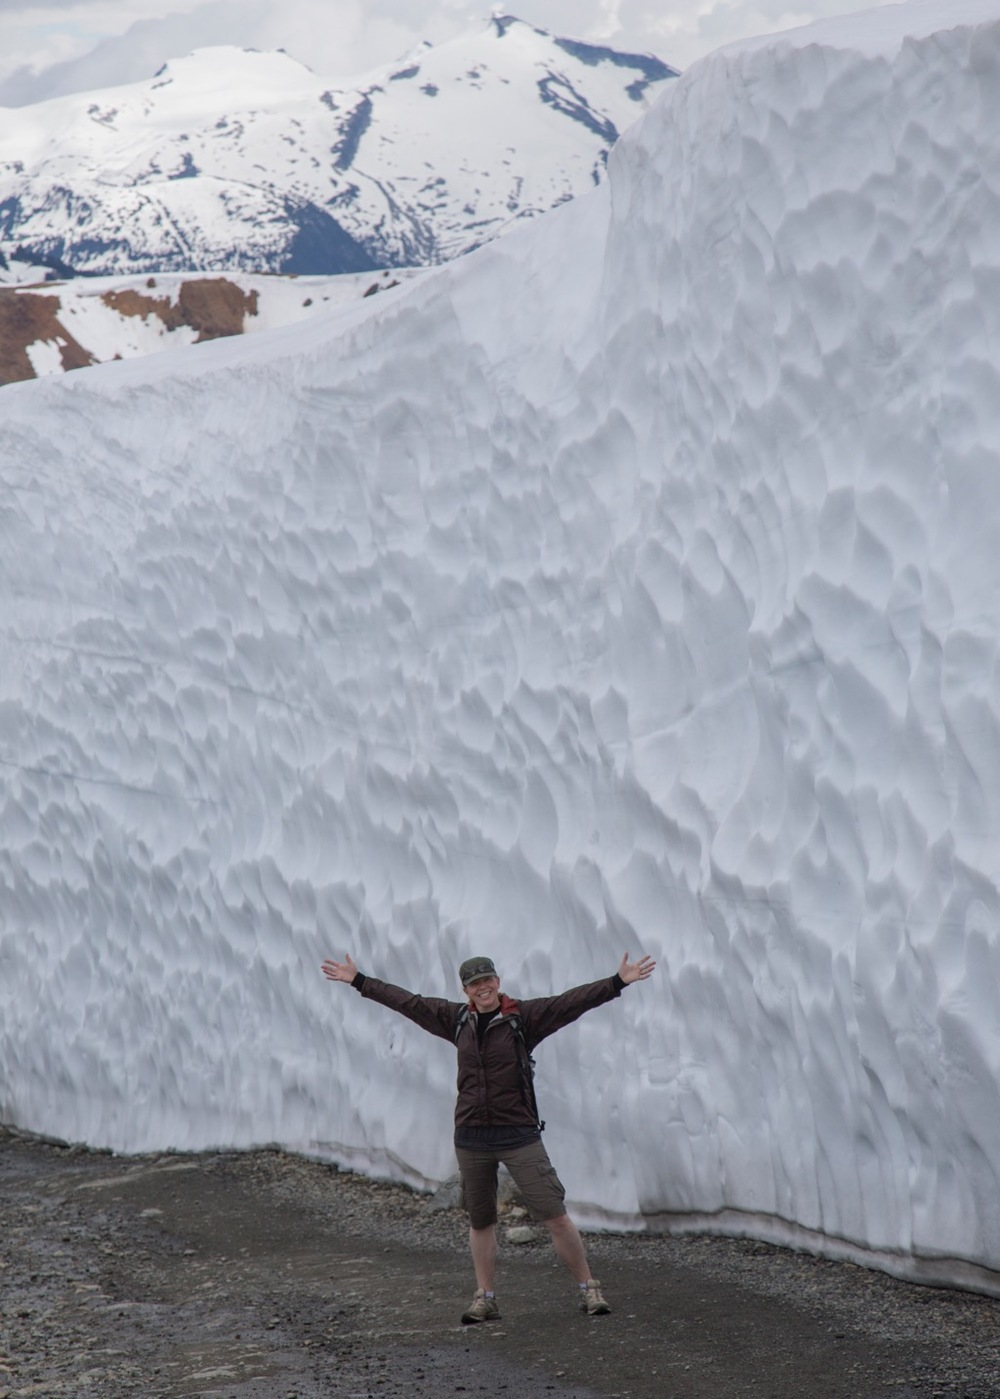 Then the snow walls got huge!